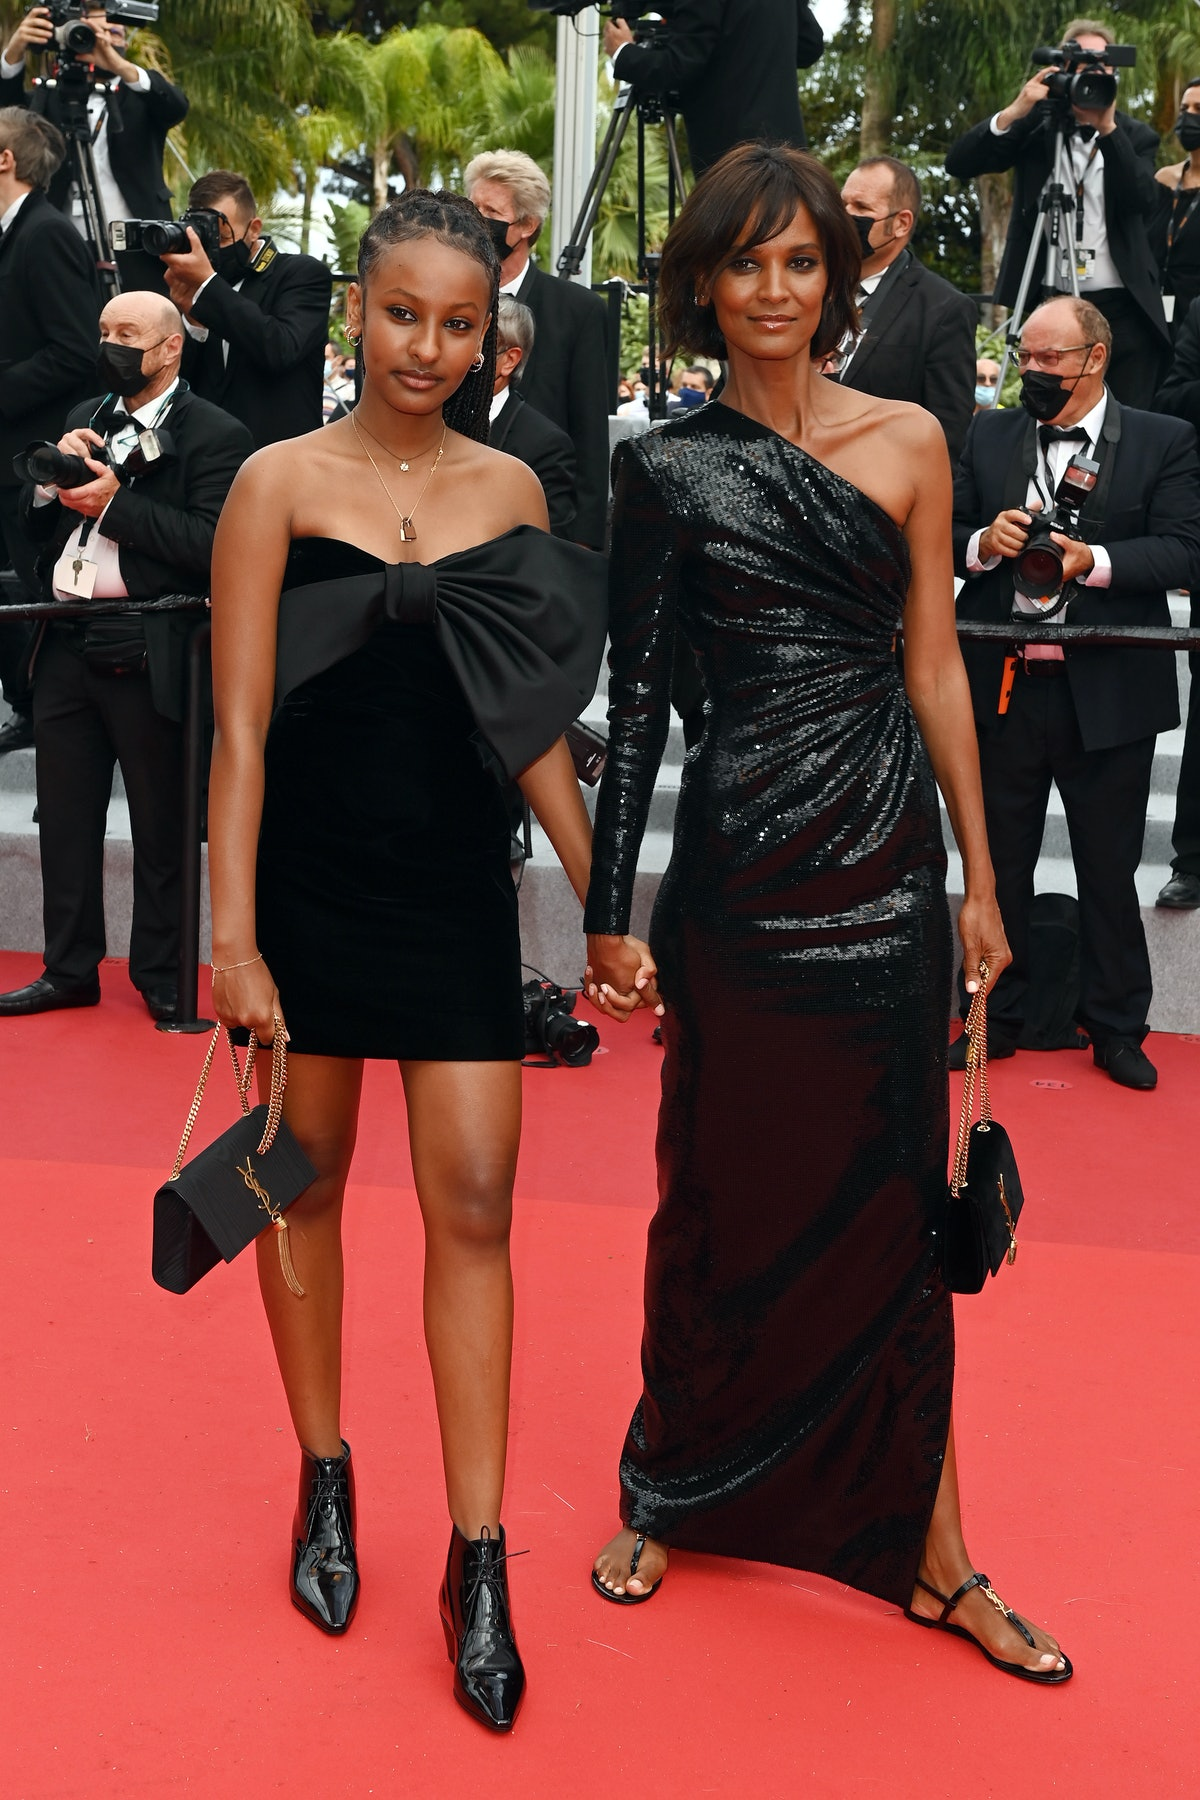 """CANNES, FRANCE - JULY 16: Raee Kebede and Liya Kebede attend the """"Les Intranquilles (The Restless)"""" screening during the 74th annual Cannes Film Festival on July 16, 2021 in Cannes, France. (Photo by Kate Green/Getty Images)"""